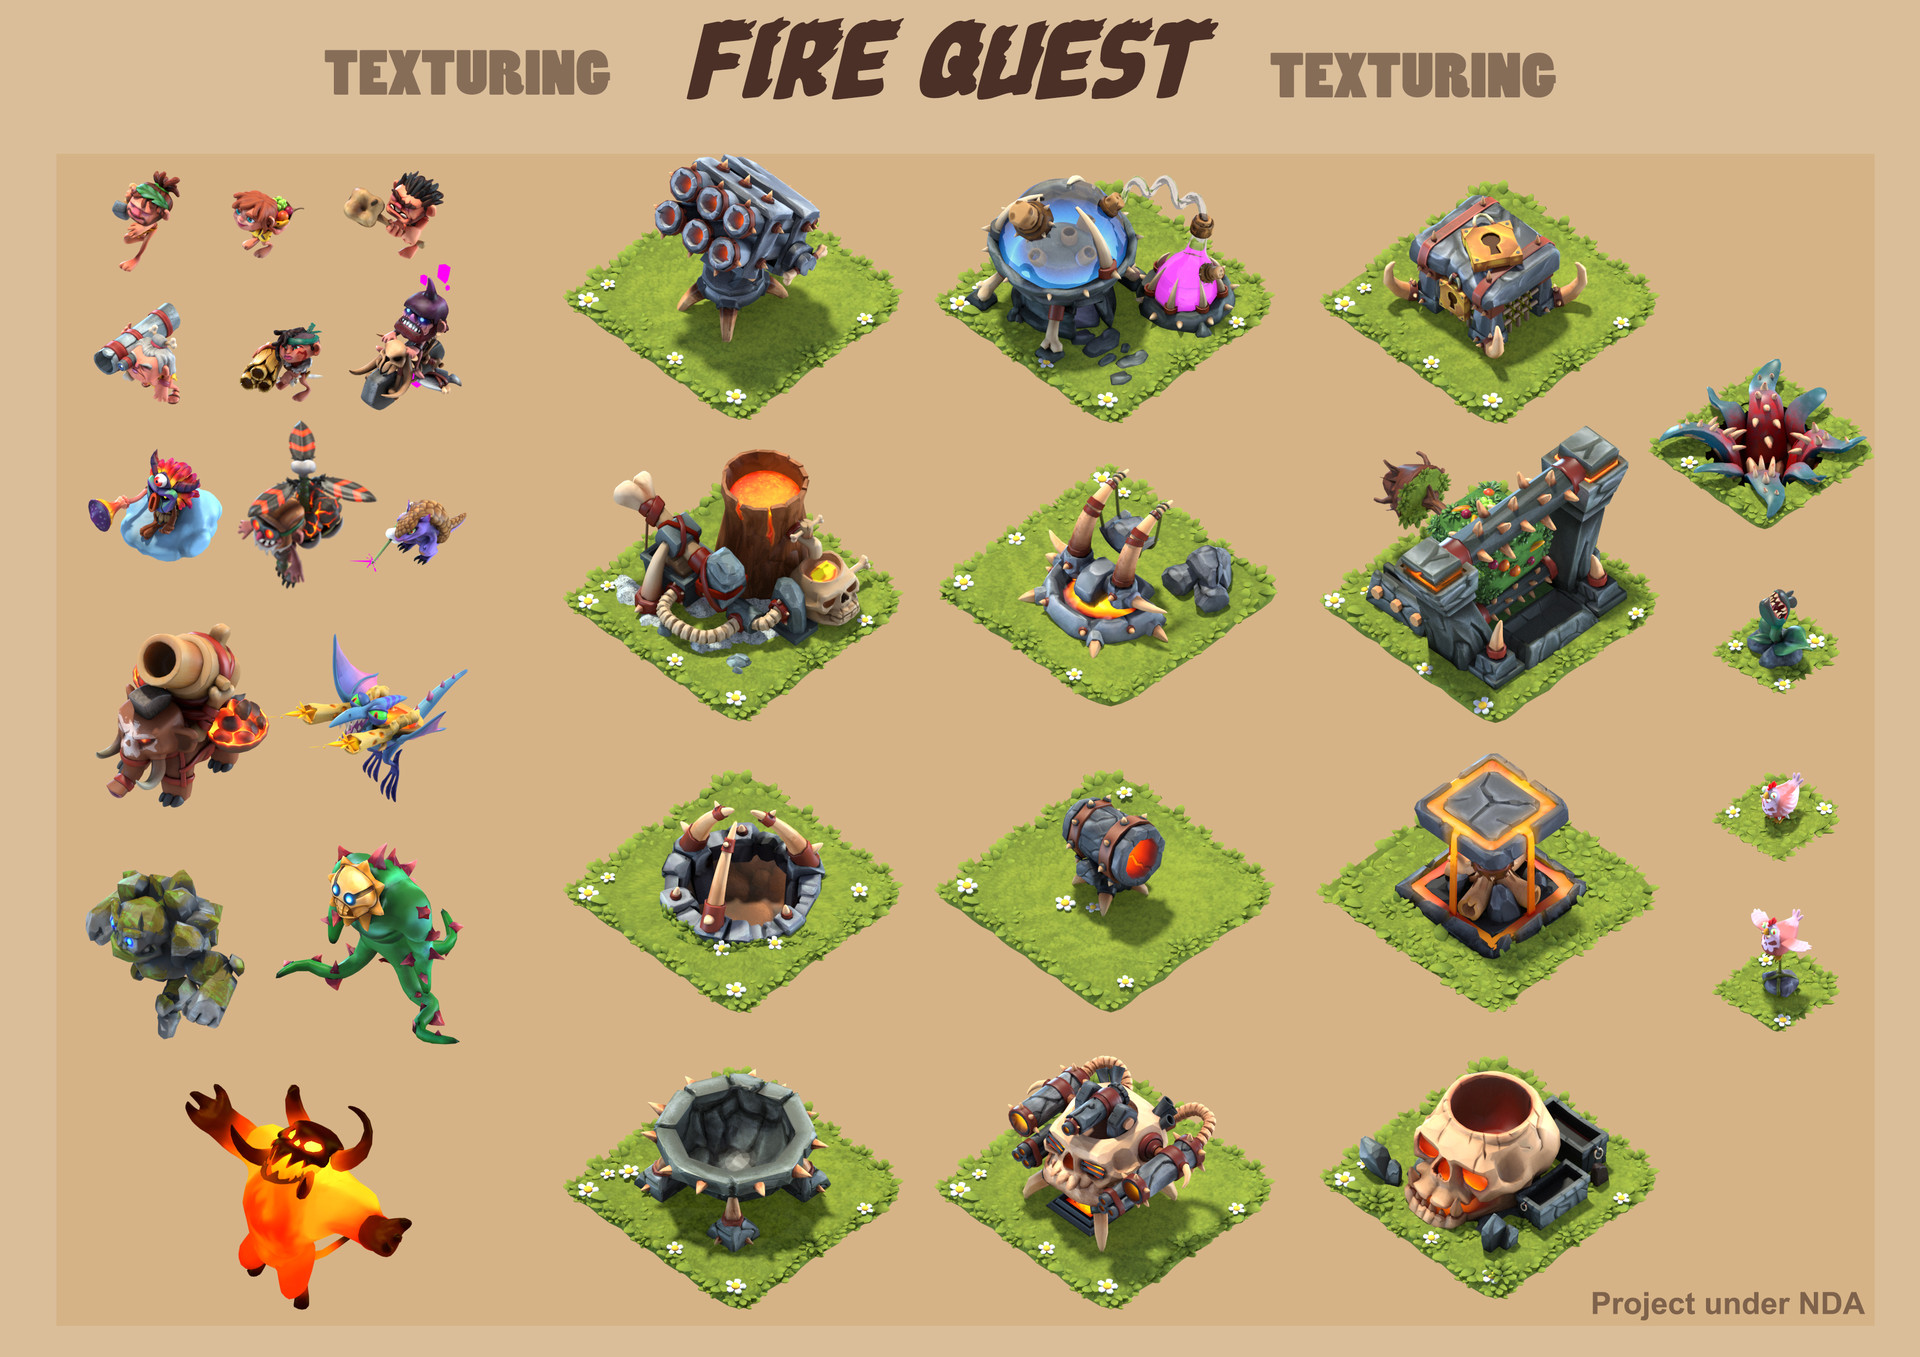 Jean philippe hugonnet firequest texturing 1